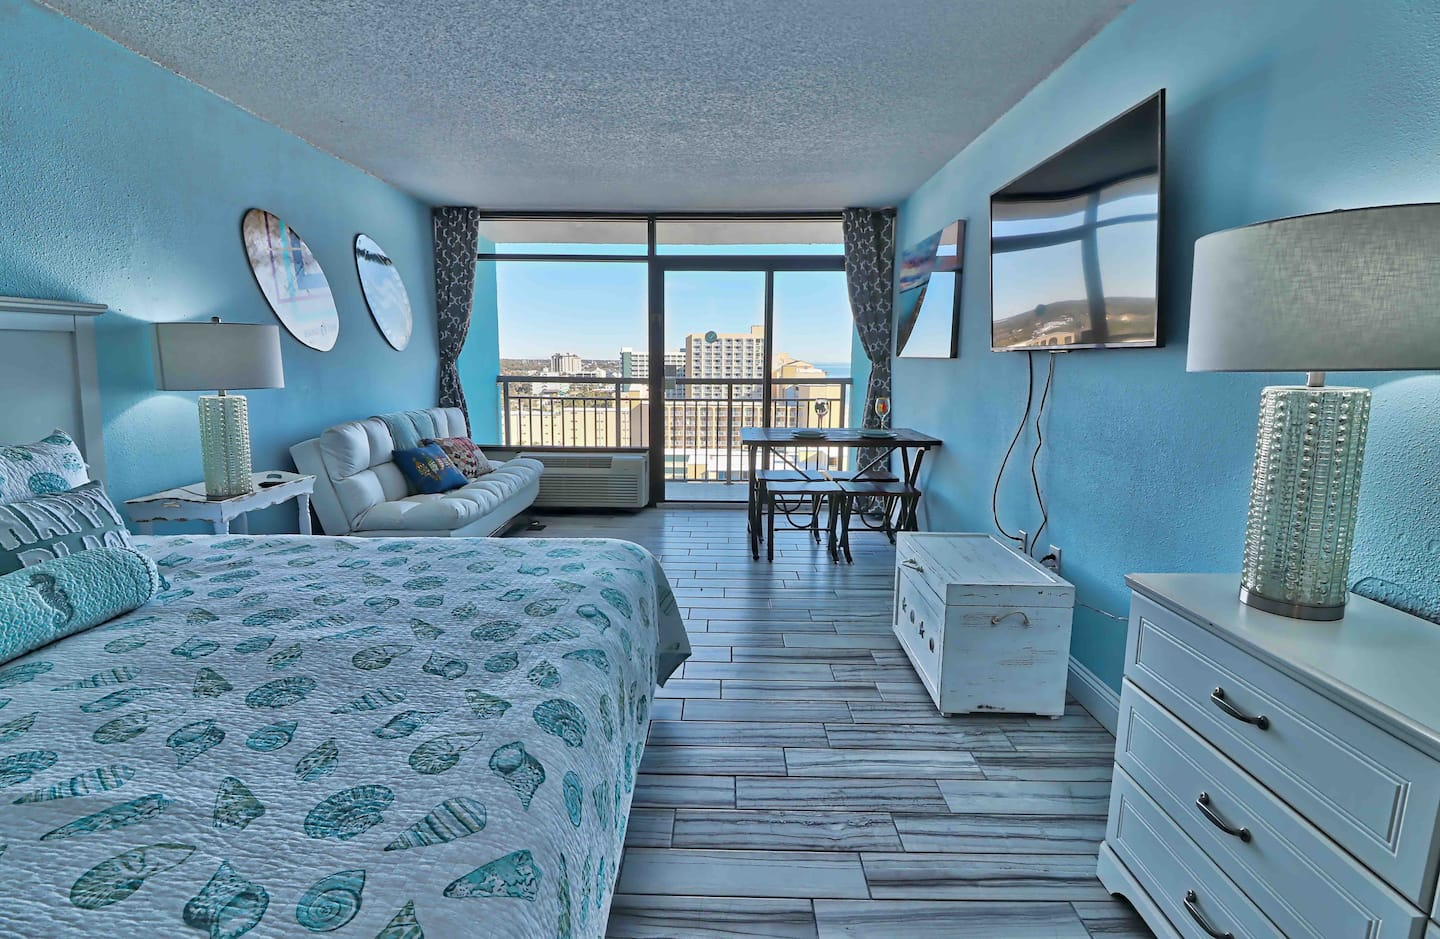 airbnb in myrtle beach with view